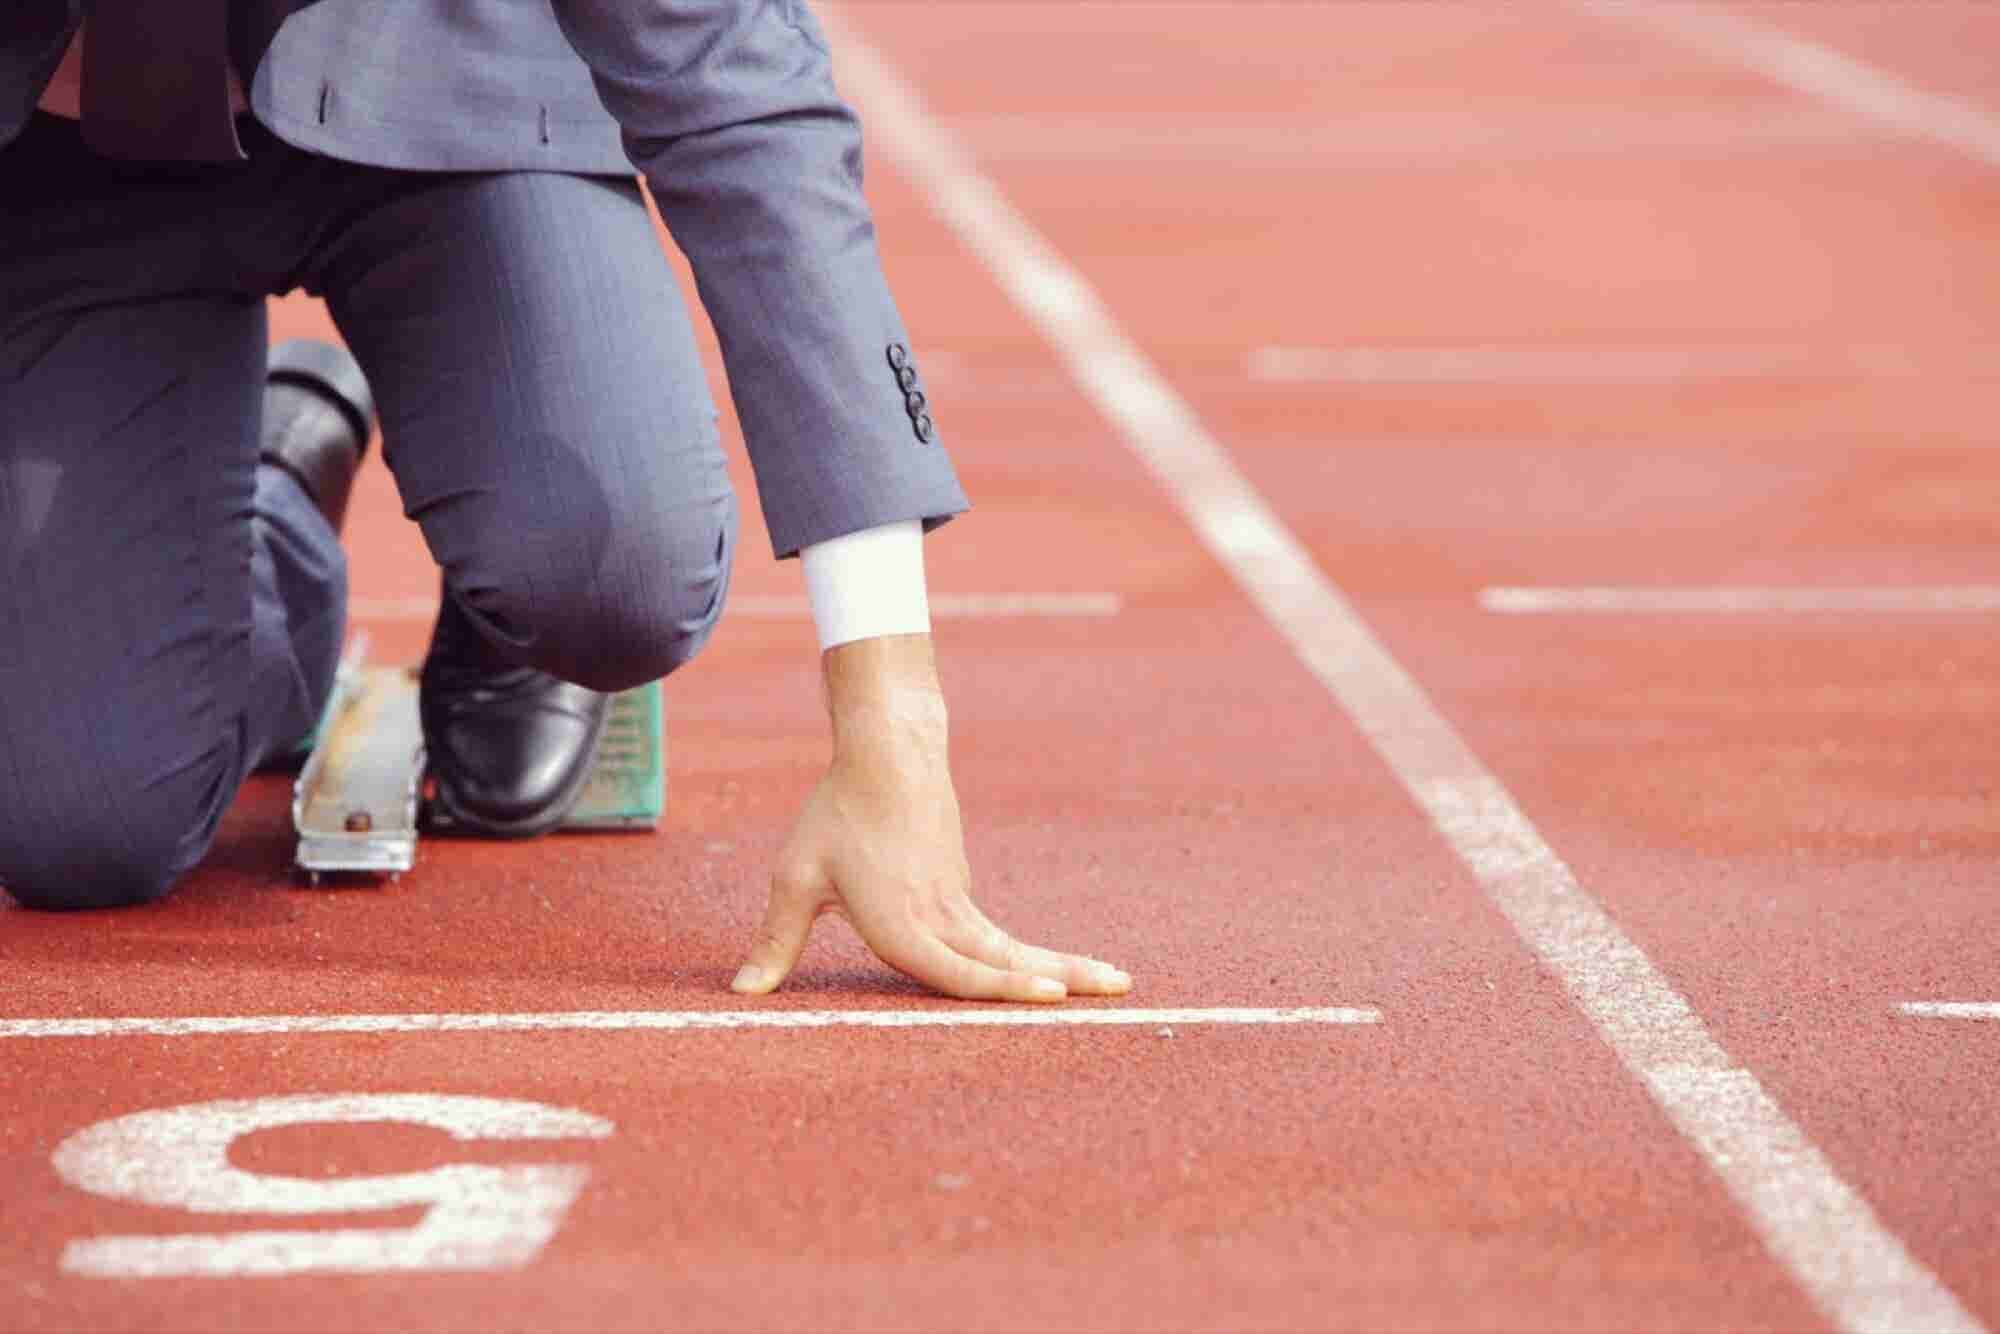 10 Lessons To Keep You and Your Start-Up Going When The Going Gets Tuff